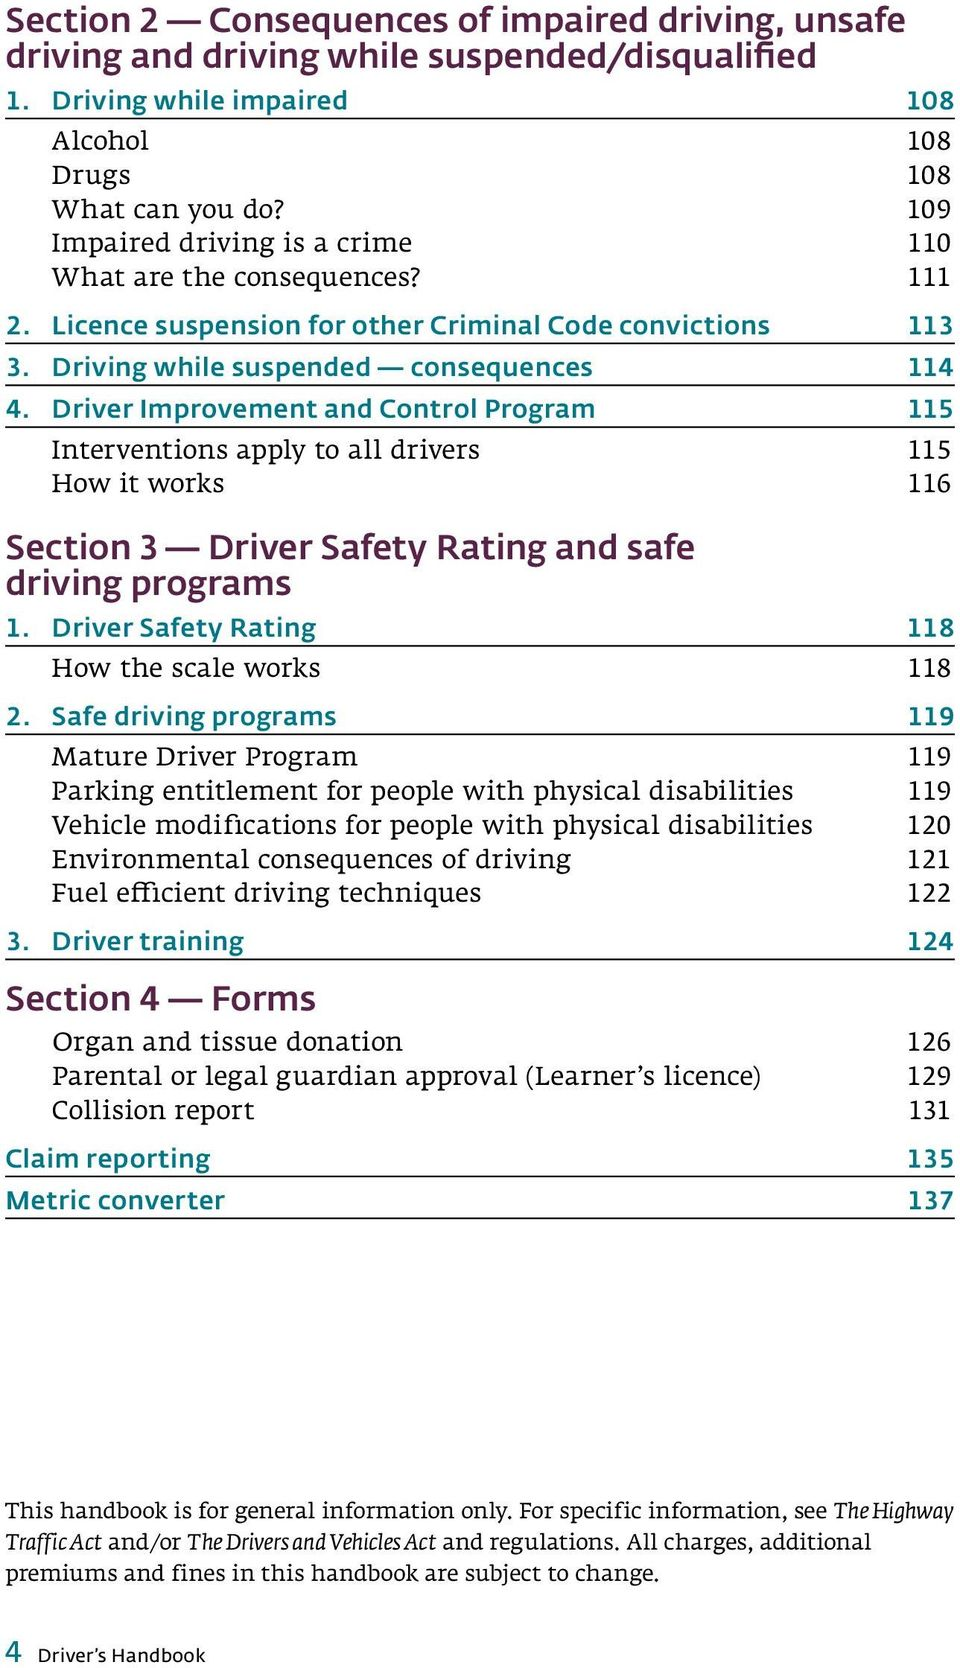 Driver Improvement and Control Program 115 Interventions apply to all drivers 115 How it works 116 Section 3 Driver Safety Rating and safe driving programs 1.